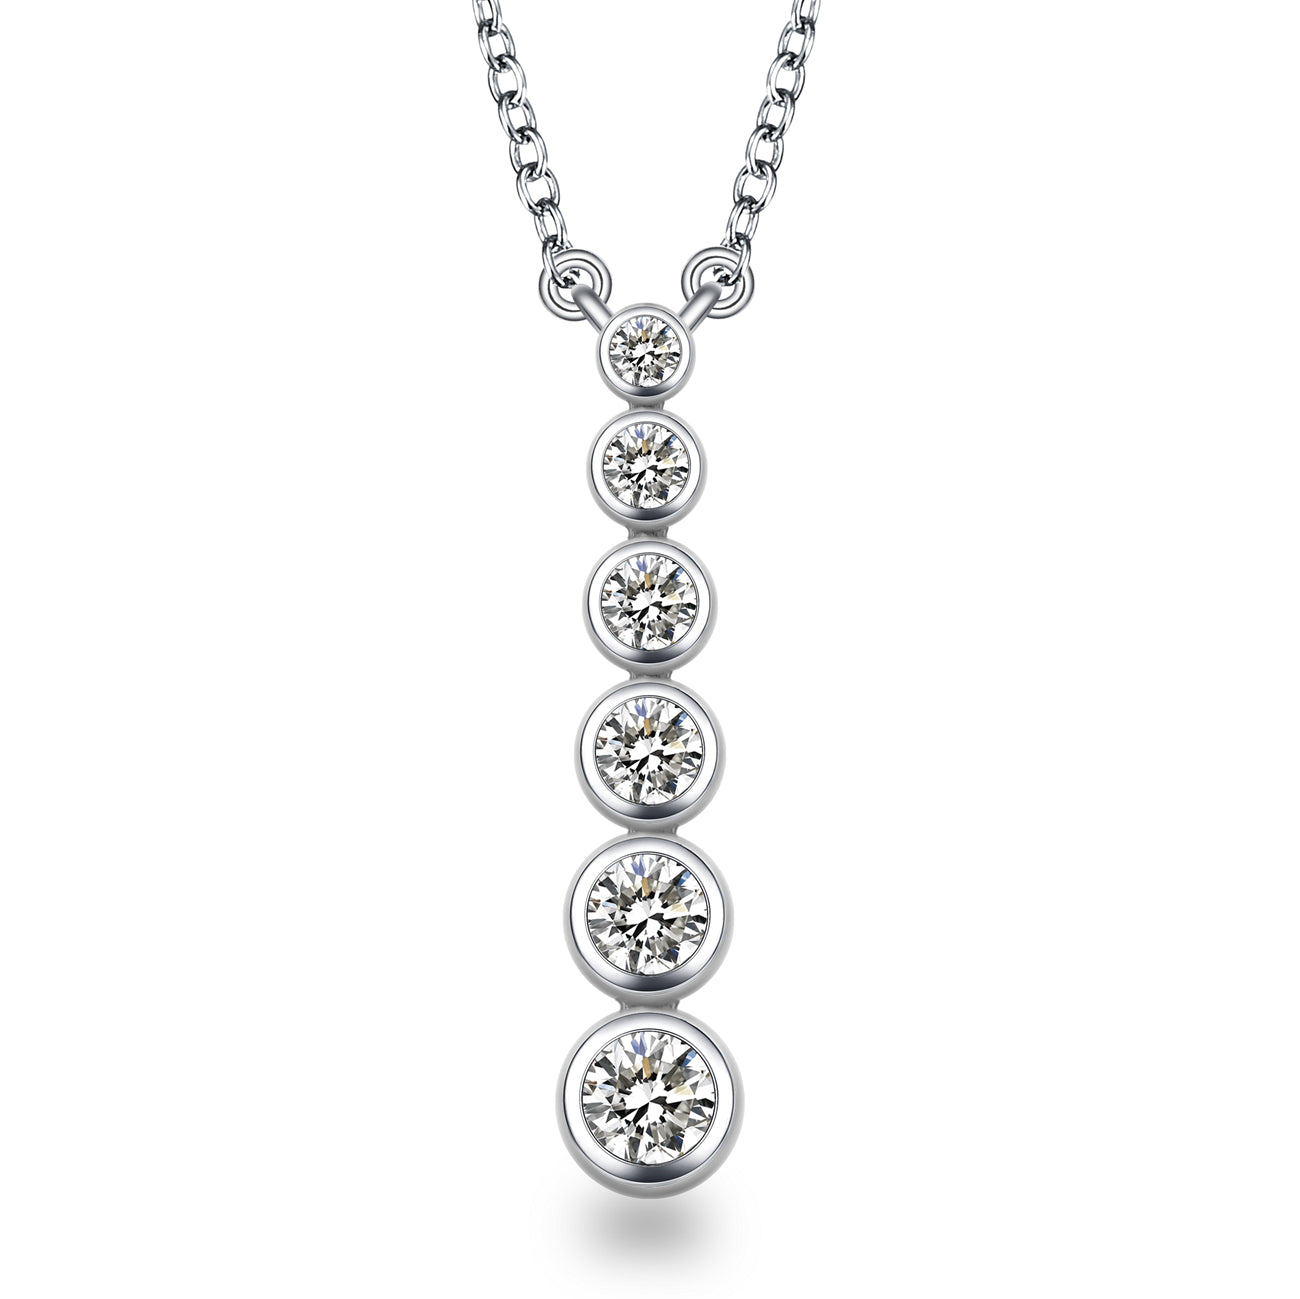 IVY STERLING SILVER NECKLACE